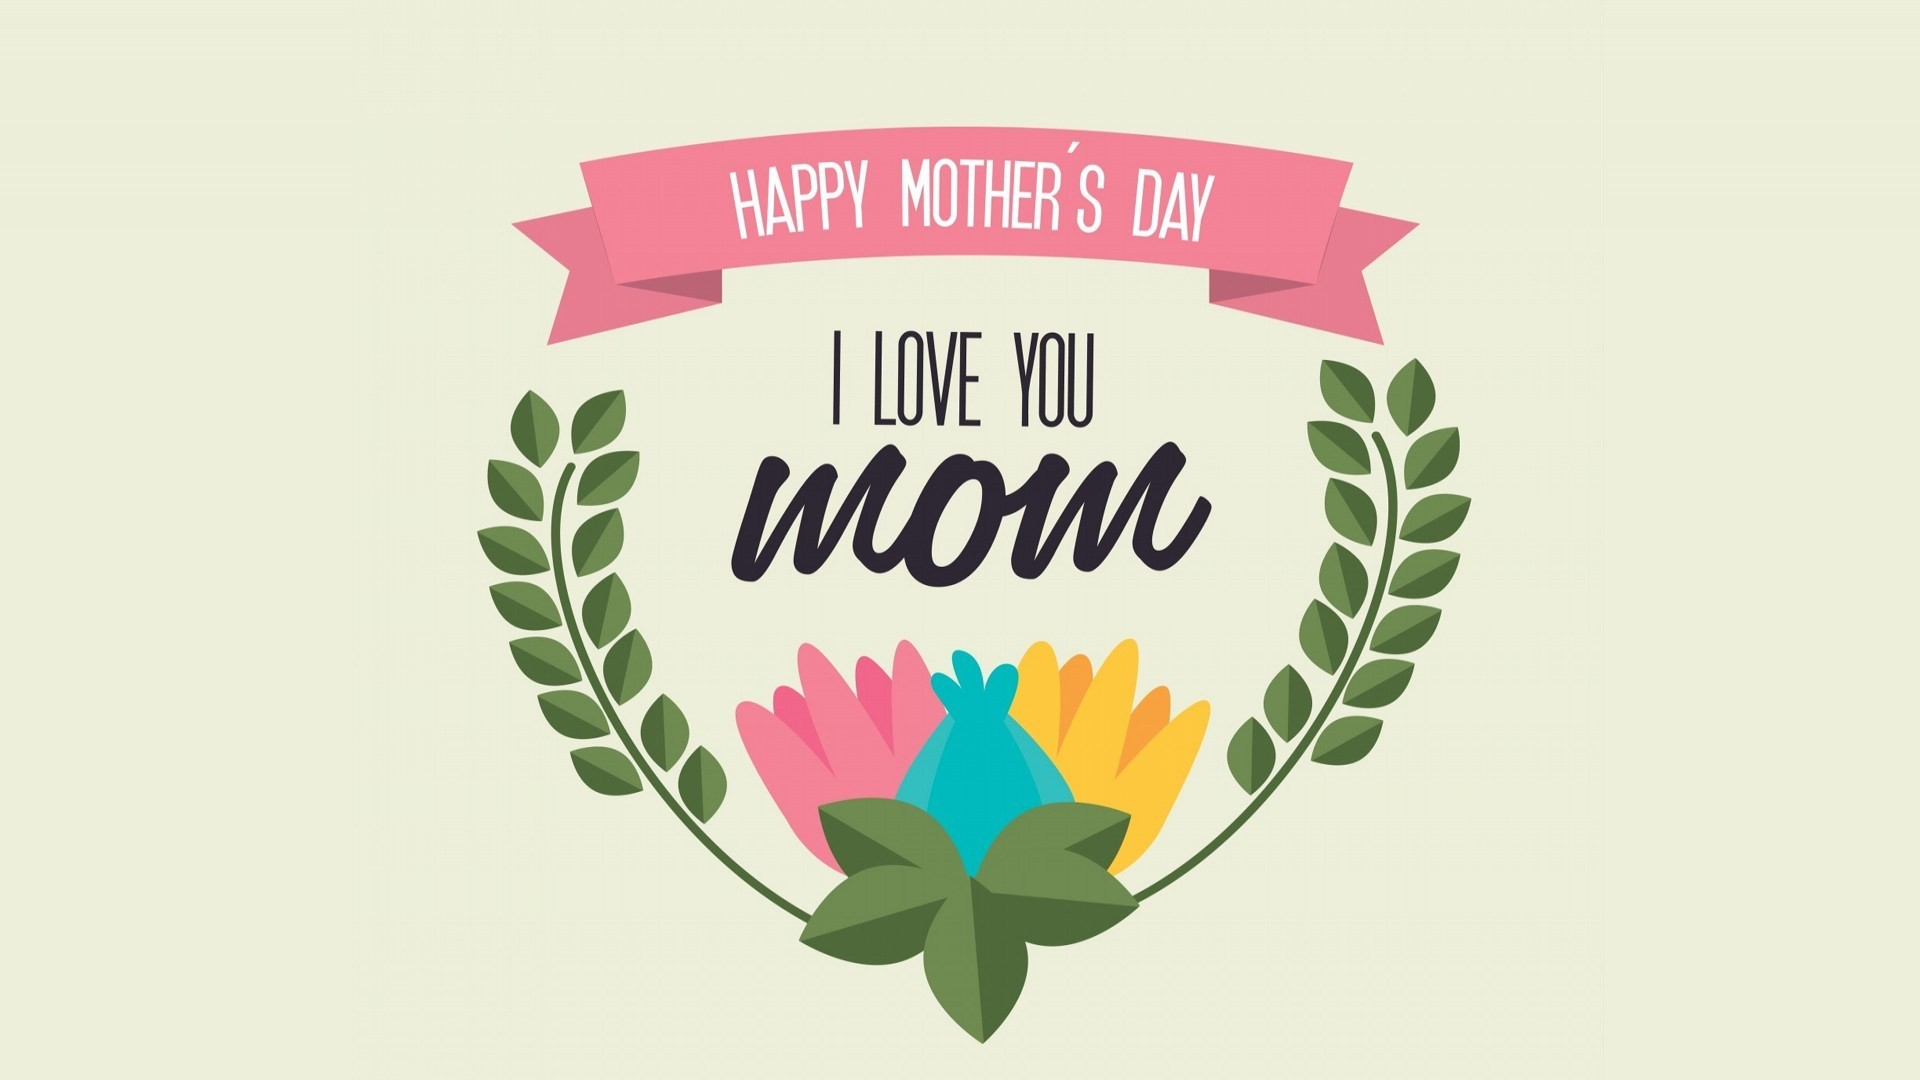 I Love You Mom Wallpapers for Mother's Day 2018